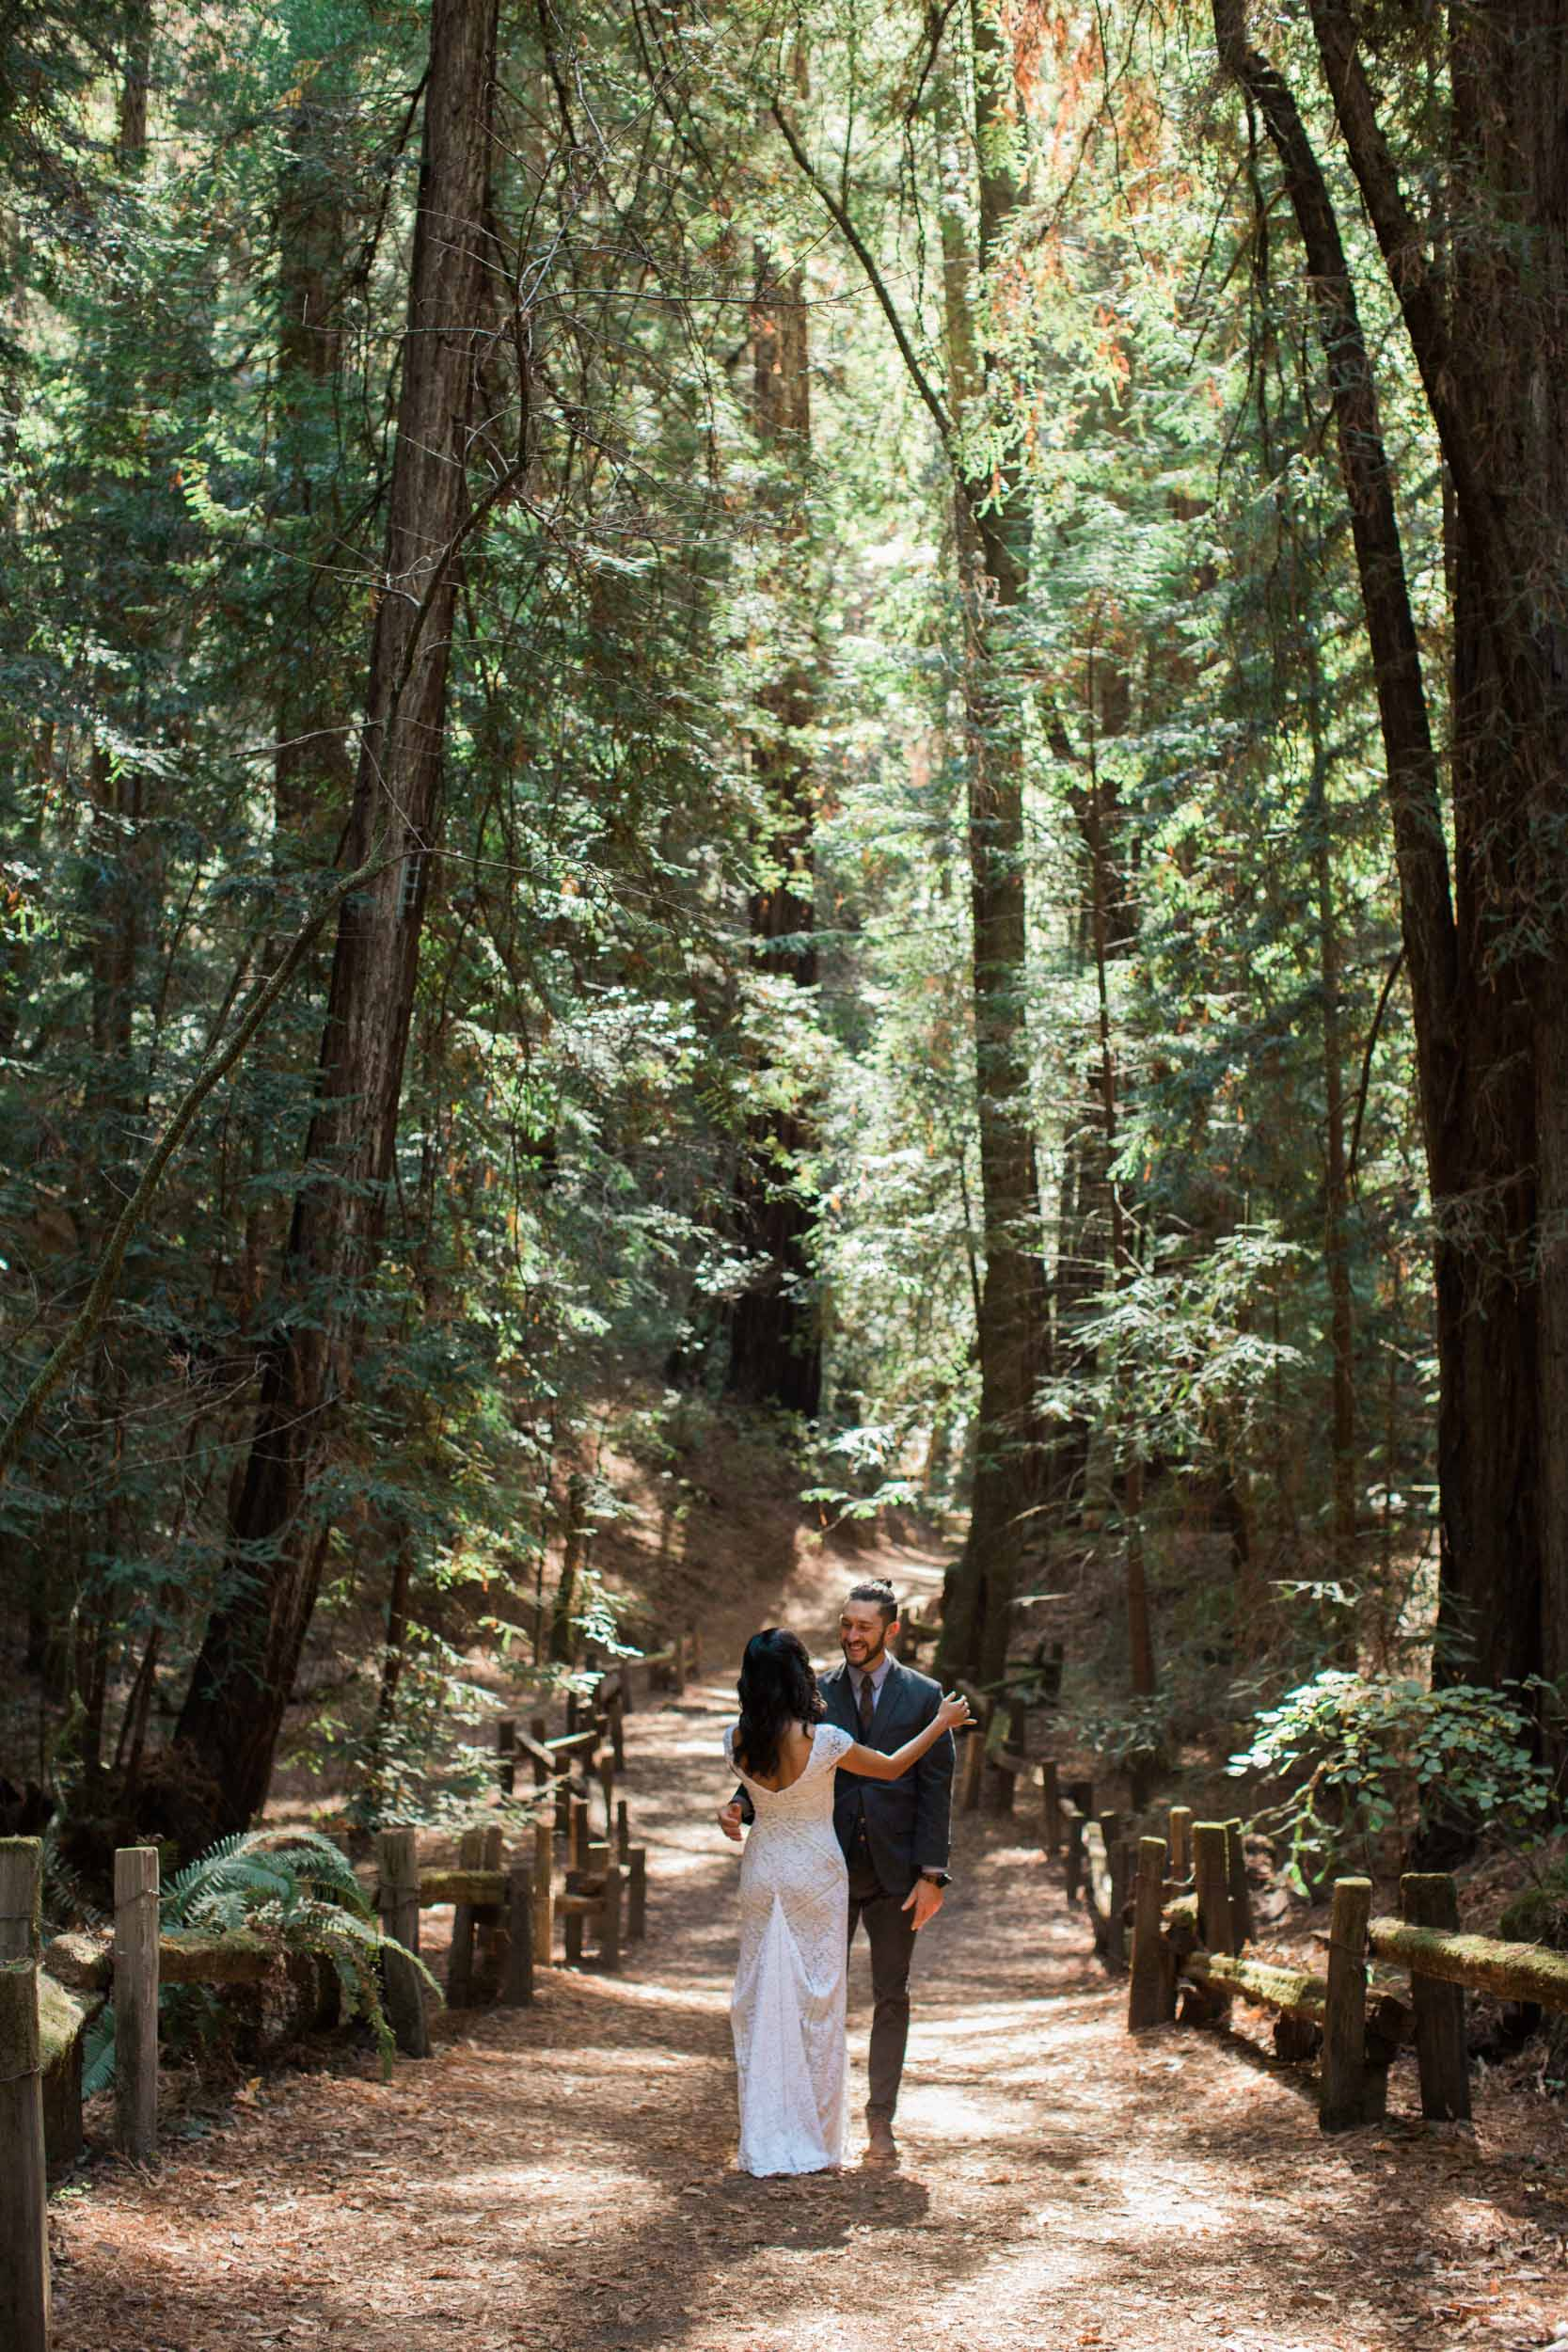 BKM-Photography-Russian-River-Wedding-Redwoods-Guerneville-California-Destination-Wedding-Photographer-0007.jpg